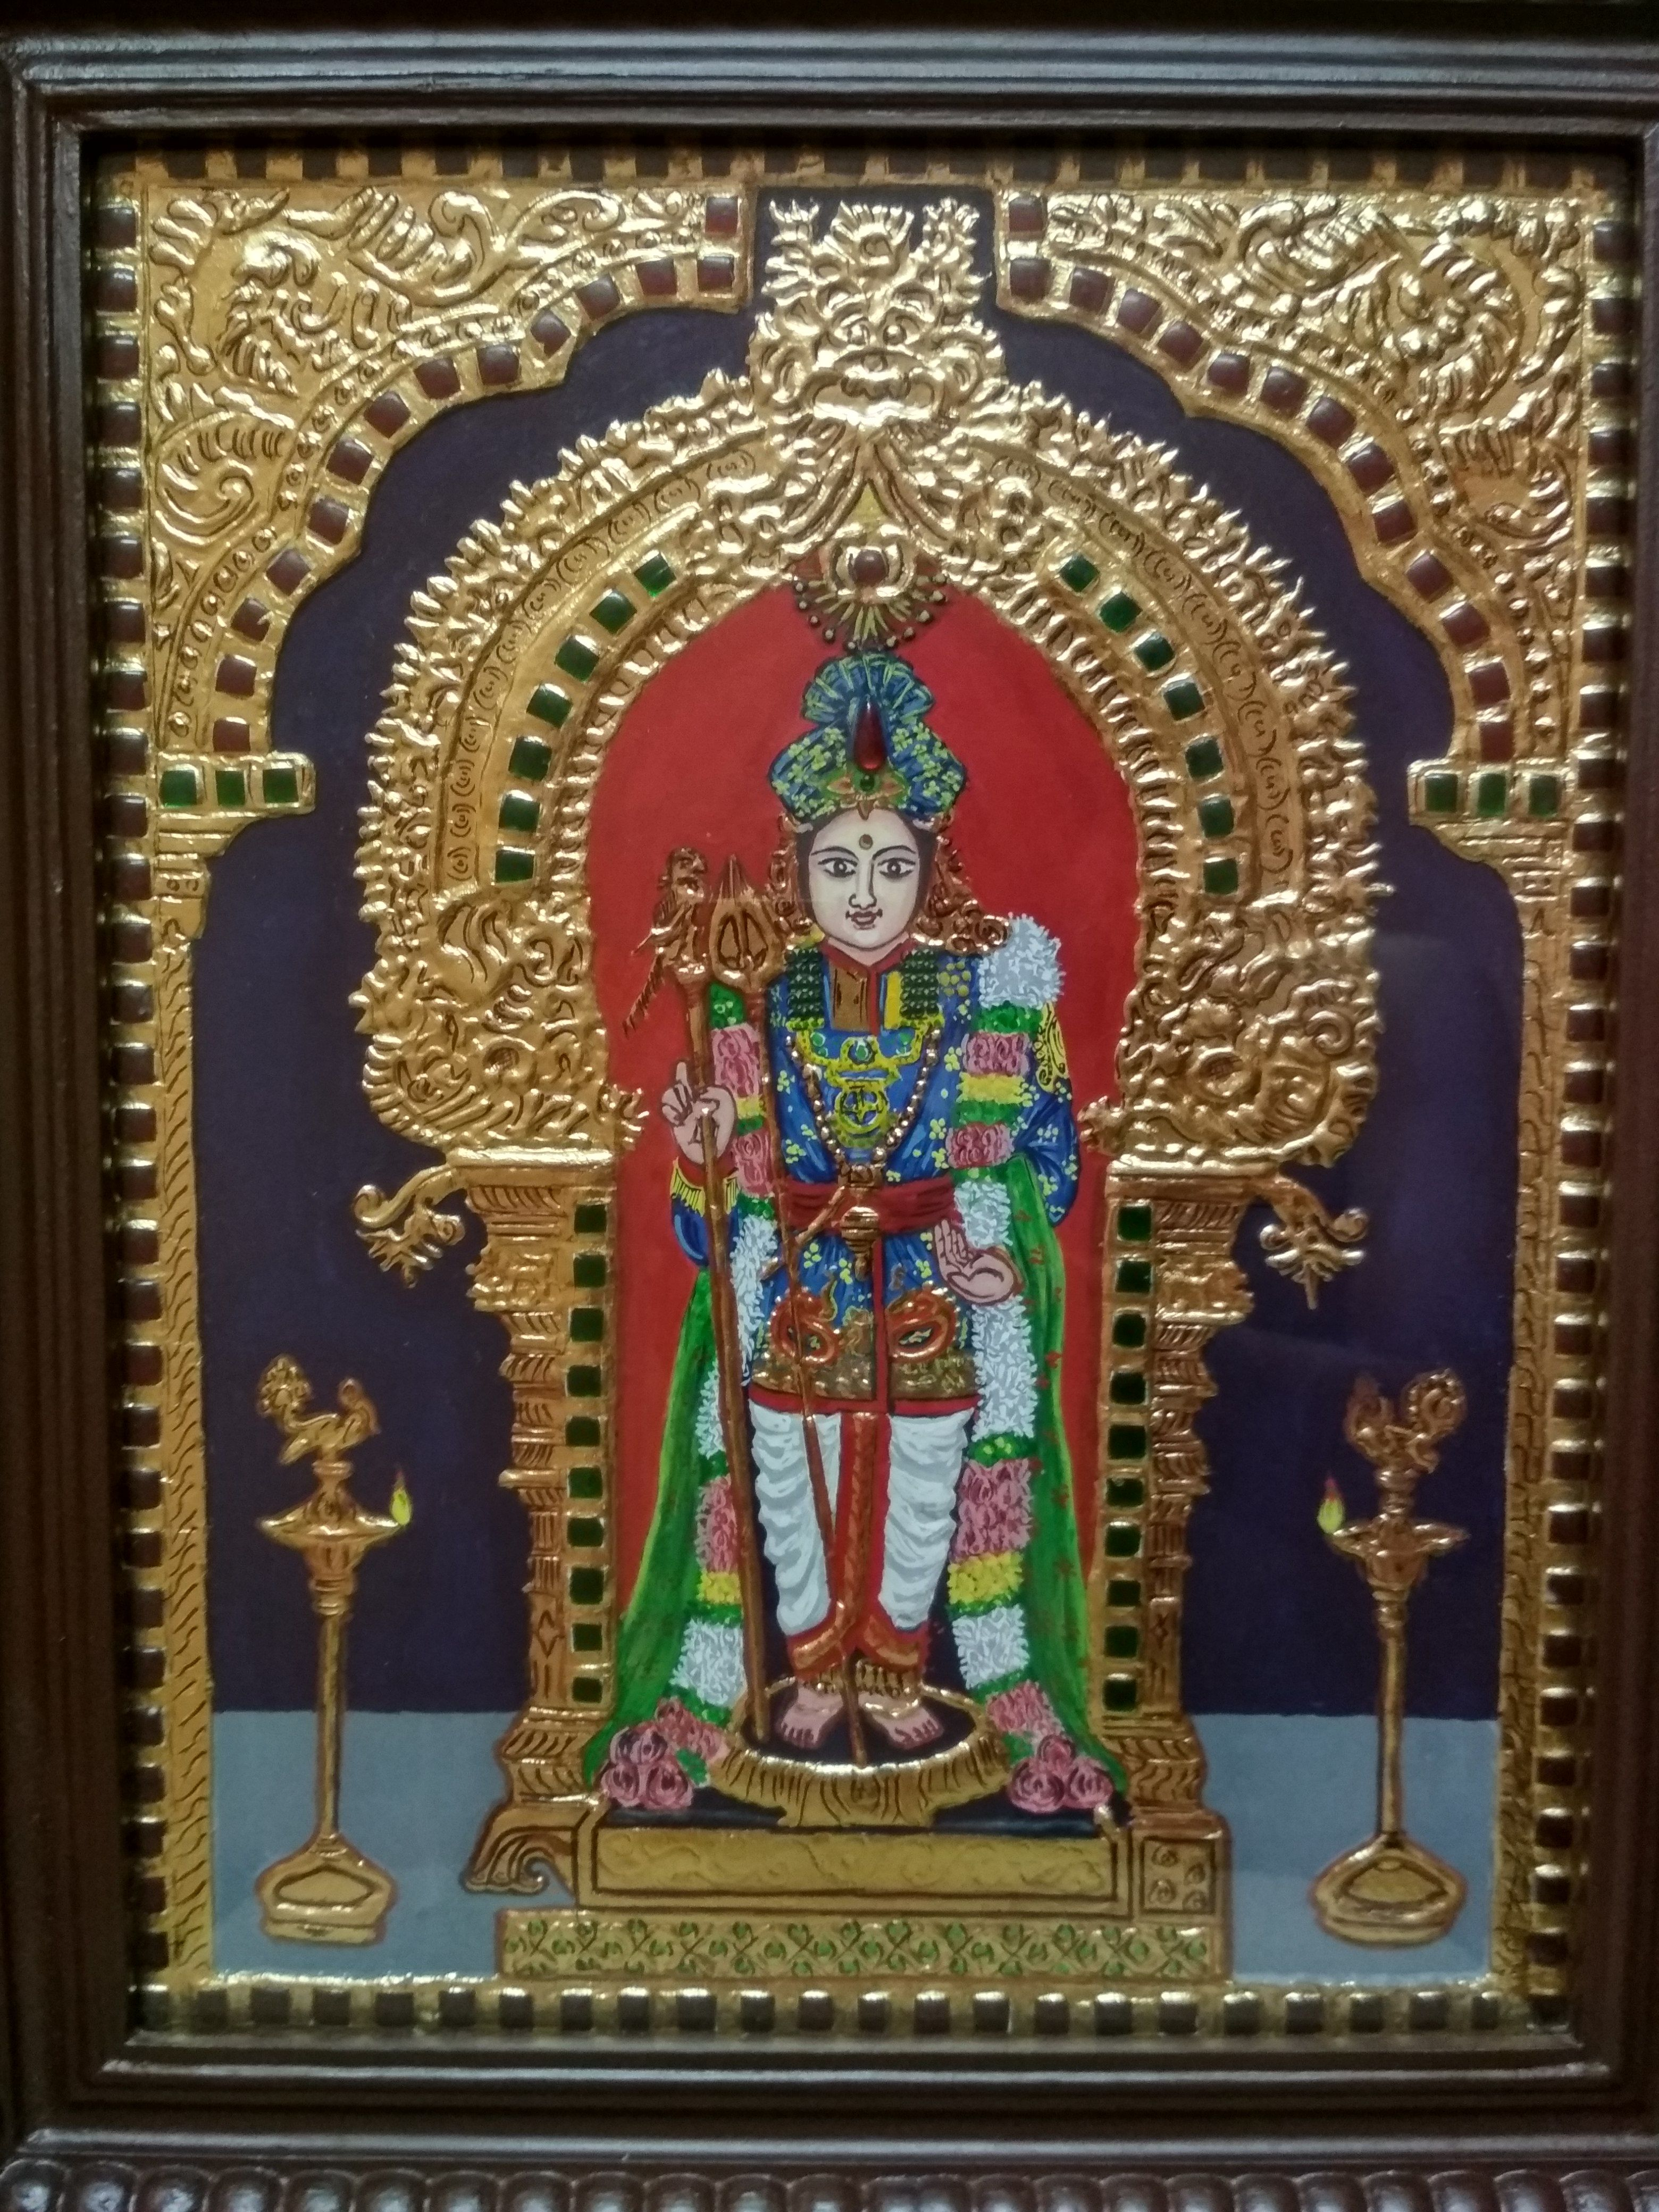 Authentic Tanjore Painting 1 22k Gold Foil 2 Teak Wood Frame 3 Size 12 Inch X 15 Inch 4 Price 8500 Inr Tanjore Painting Painting Art